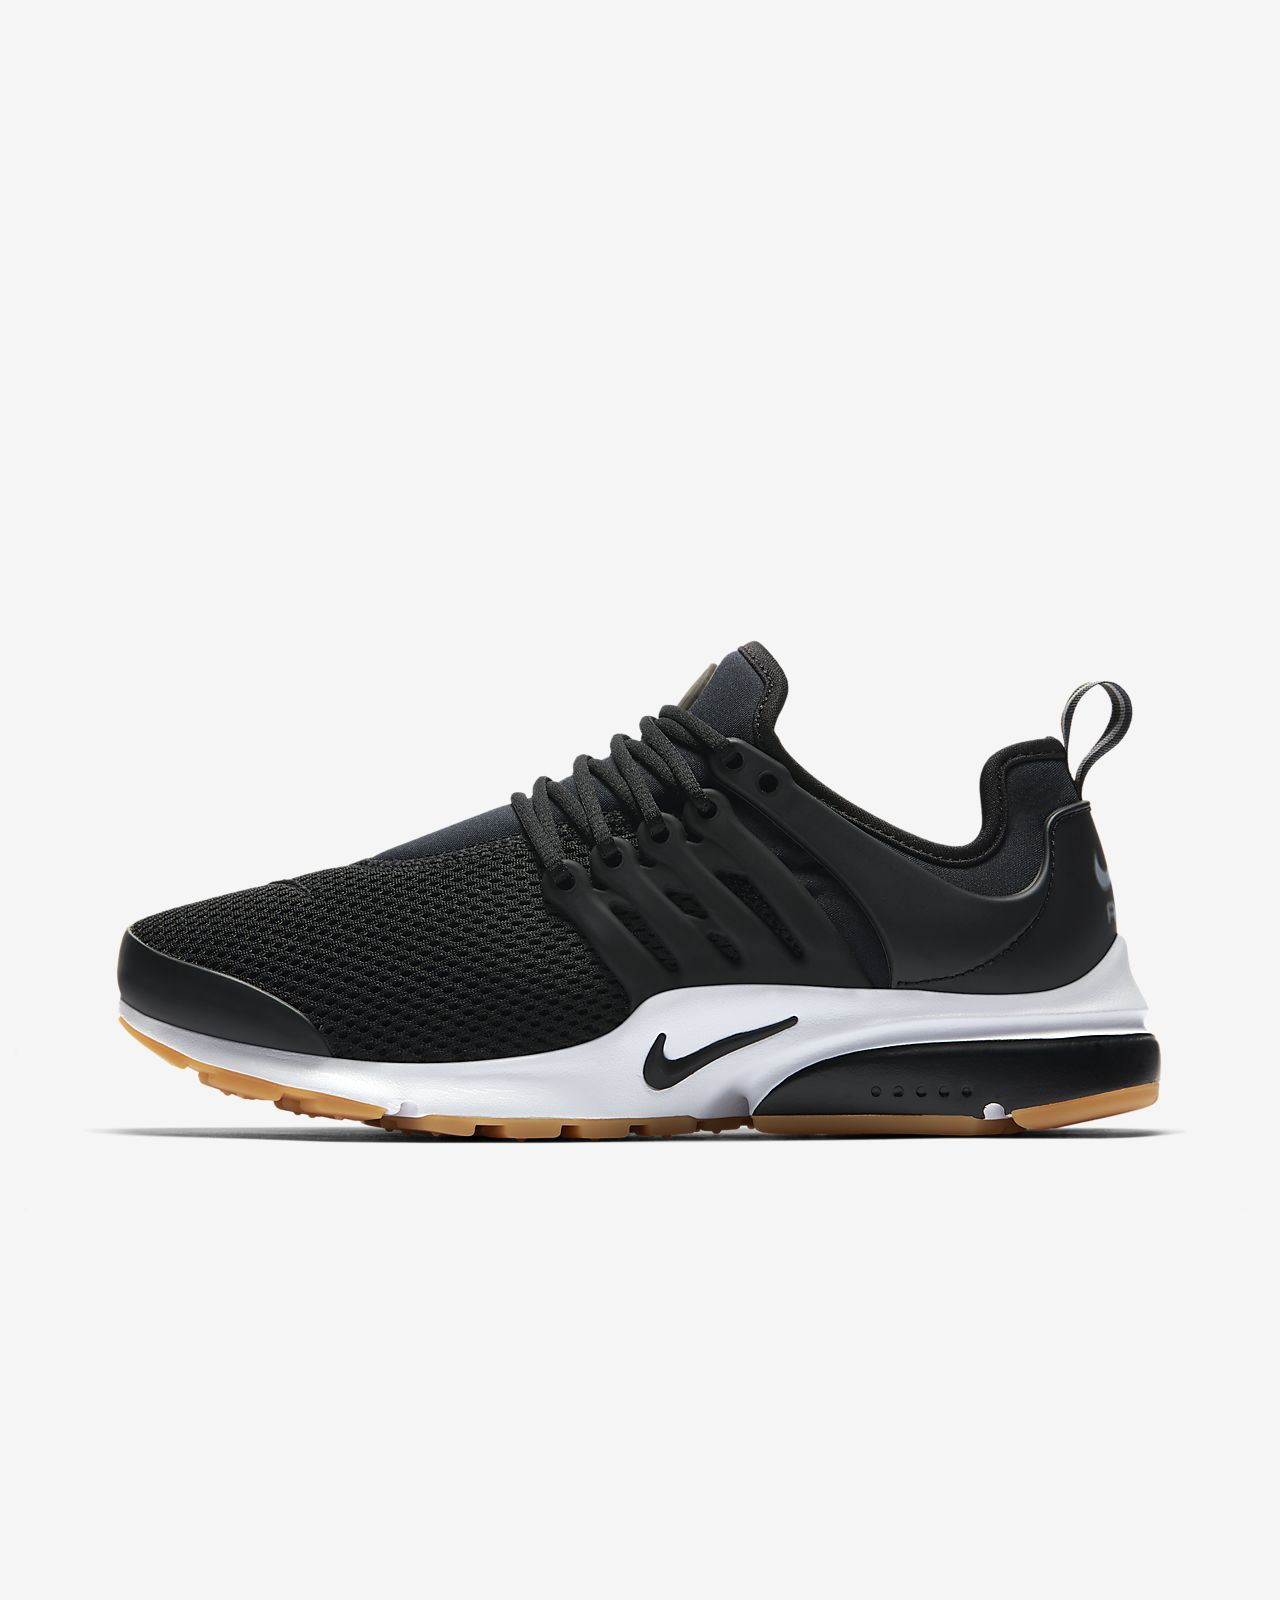 premium selection 7ae6a affe8 Nike Air Presto Women's Shoe